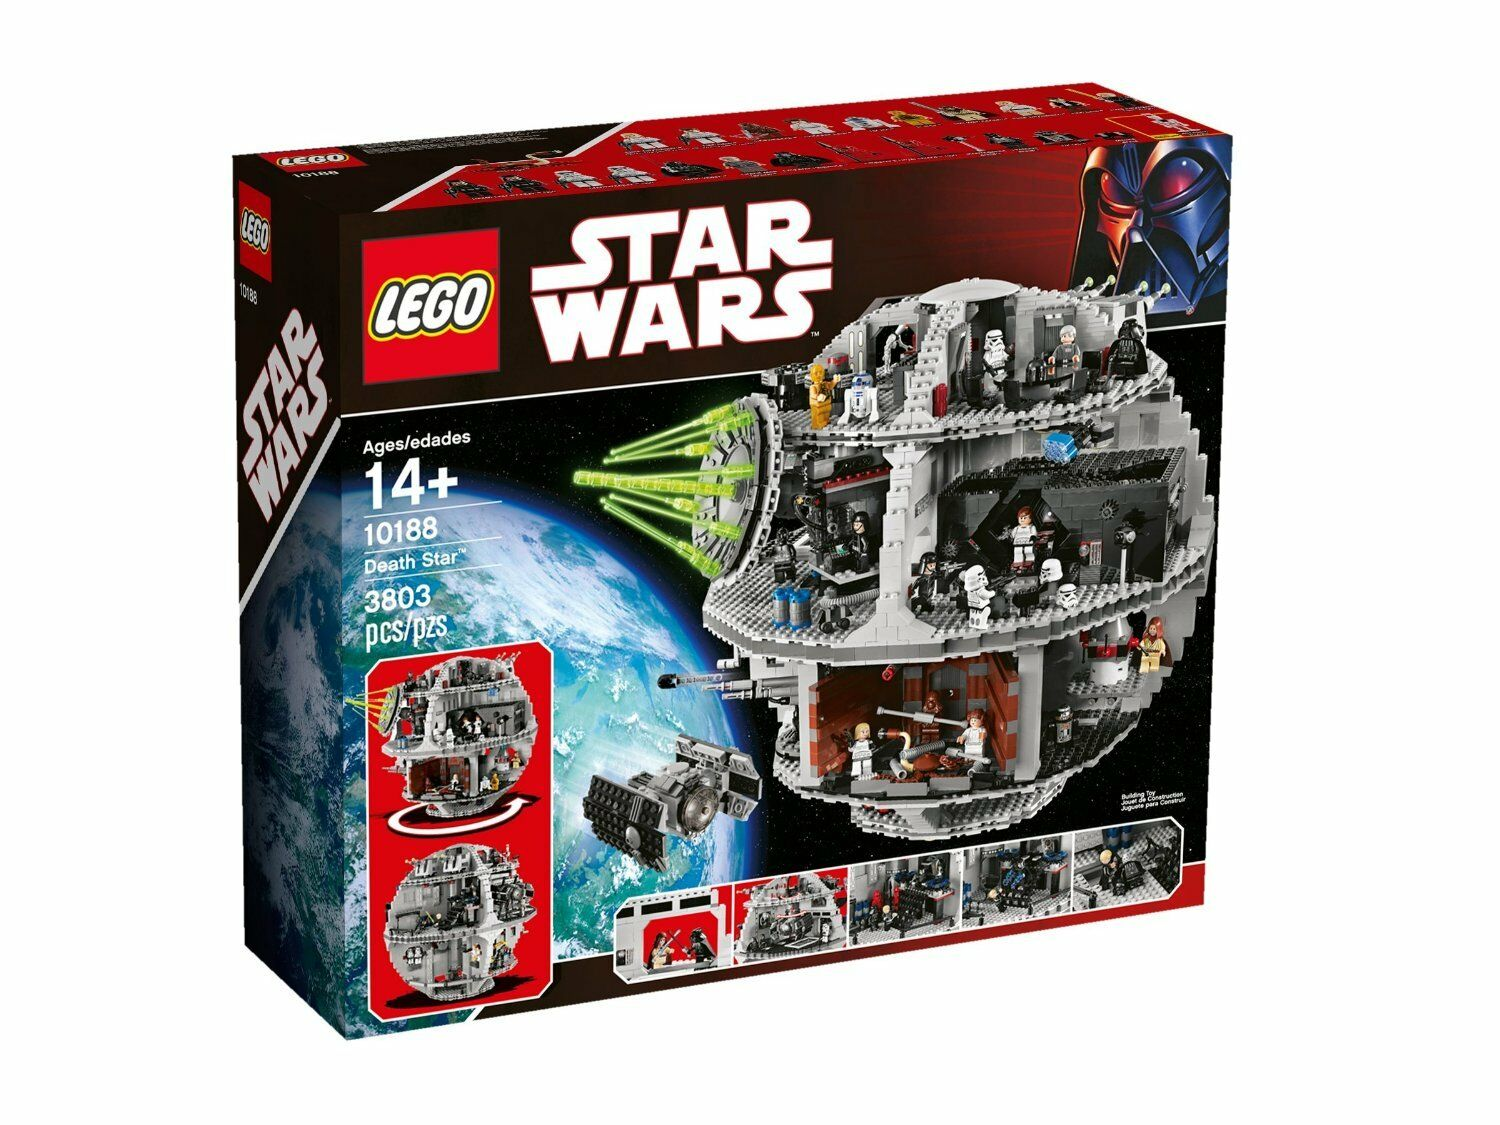 LEGO Star Wars Death Star 10188 new & sealed.